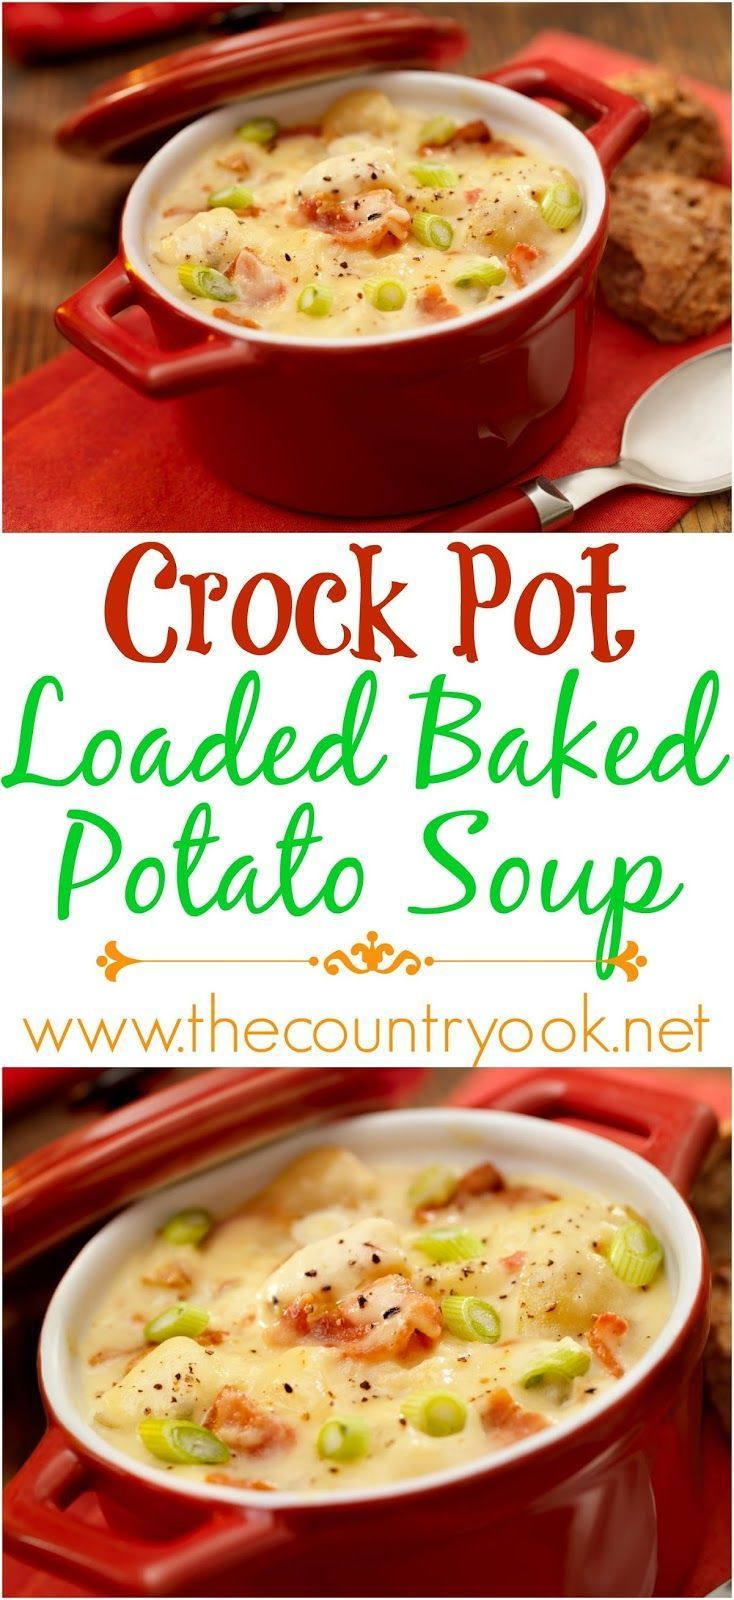 Crockpot Potato Soup Recipe  Crock Pot Loaded Baked Potato Soup recipe from The Country